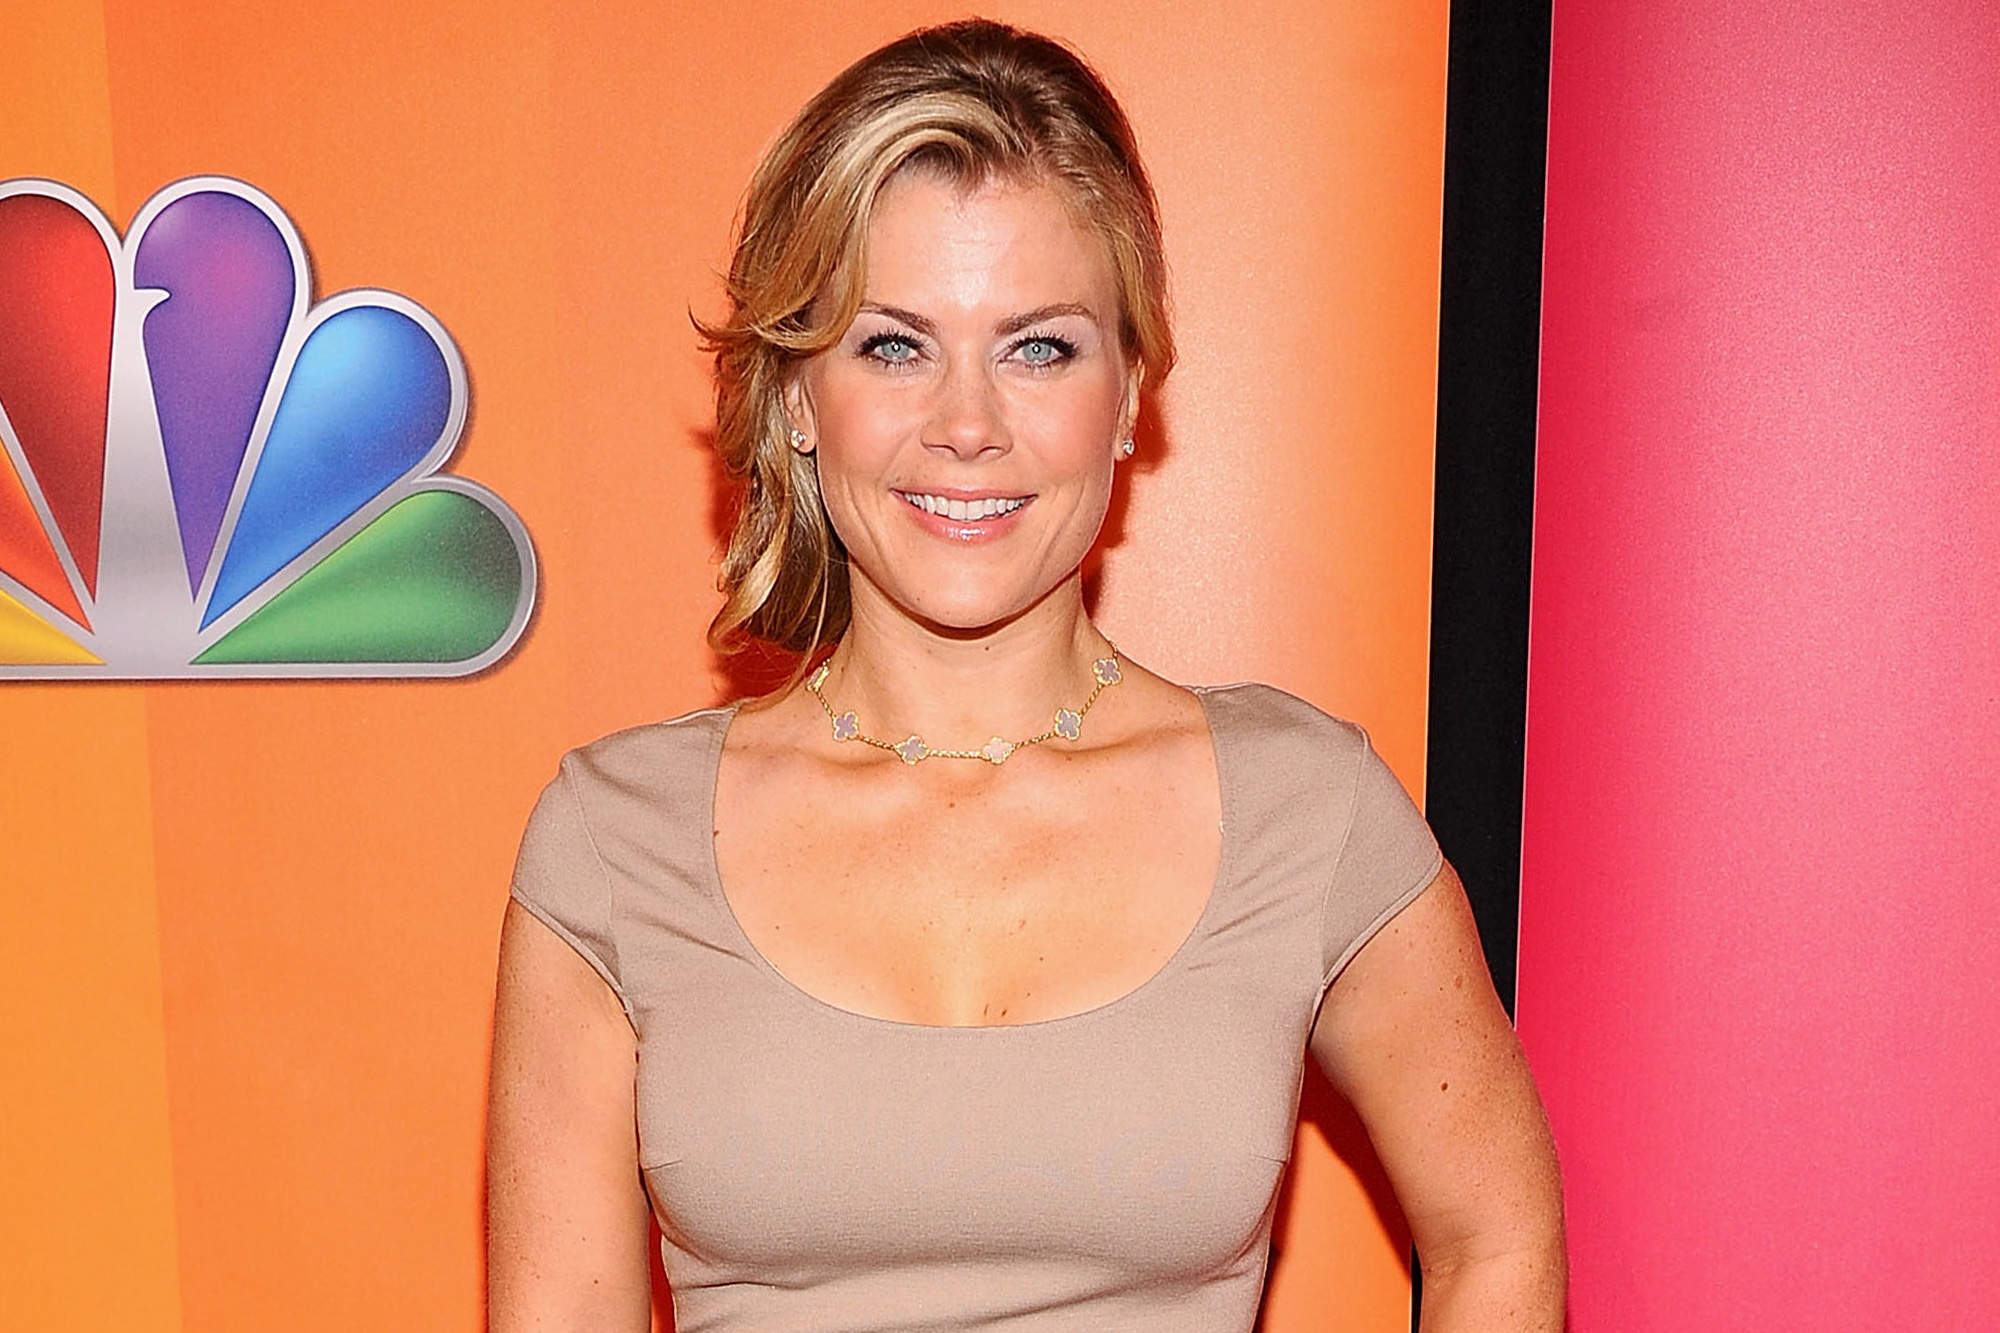 The 45-year old daughter of father (?) and mother(?) Alison Sweeney in 2021 photo. Alison Sweeney earned a  million dollar salary - leaving the net worth at  million in 2021